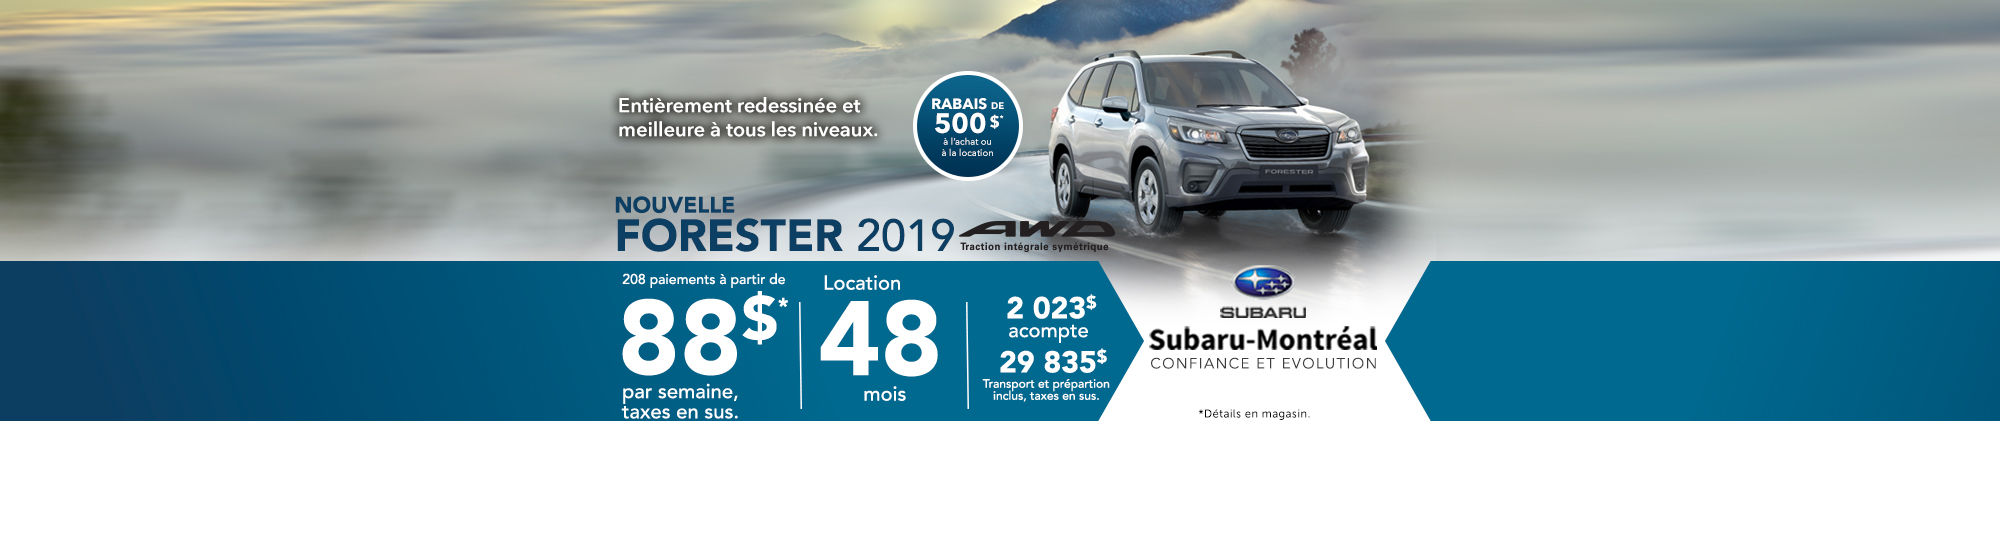 forester 2019